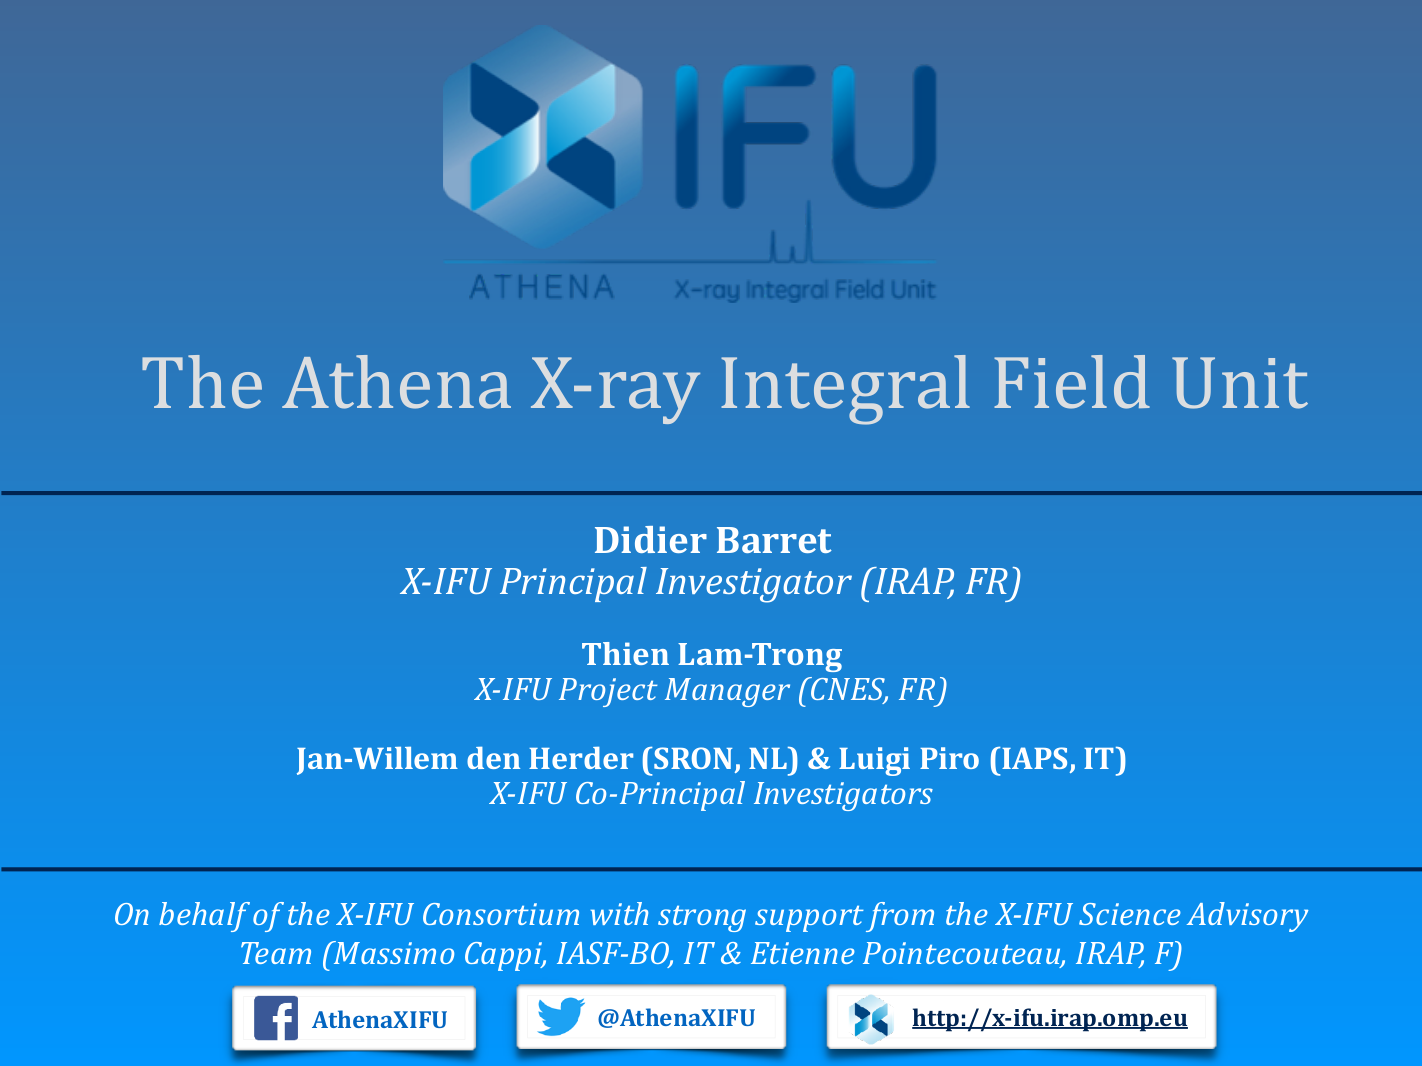 The Athena X-ray Integral Field Unit